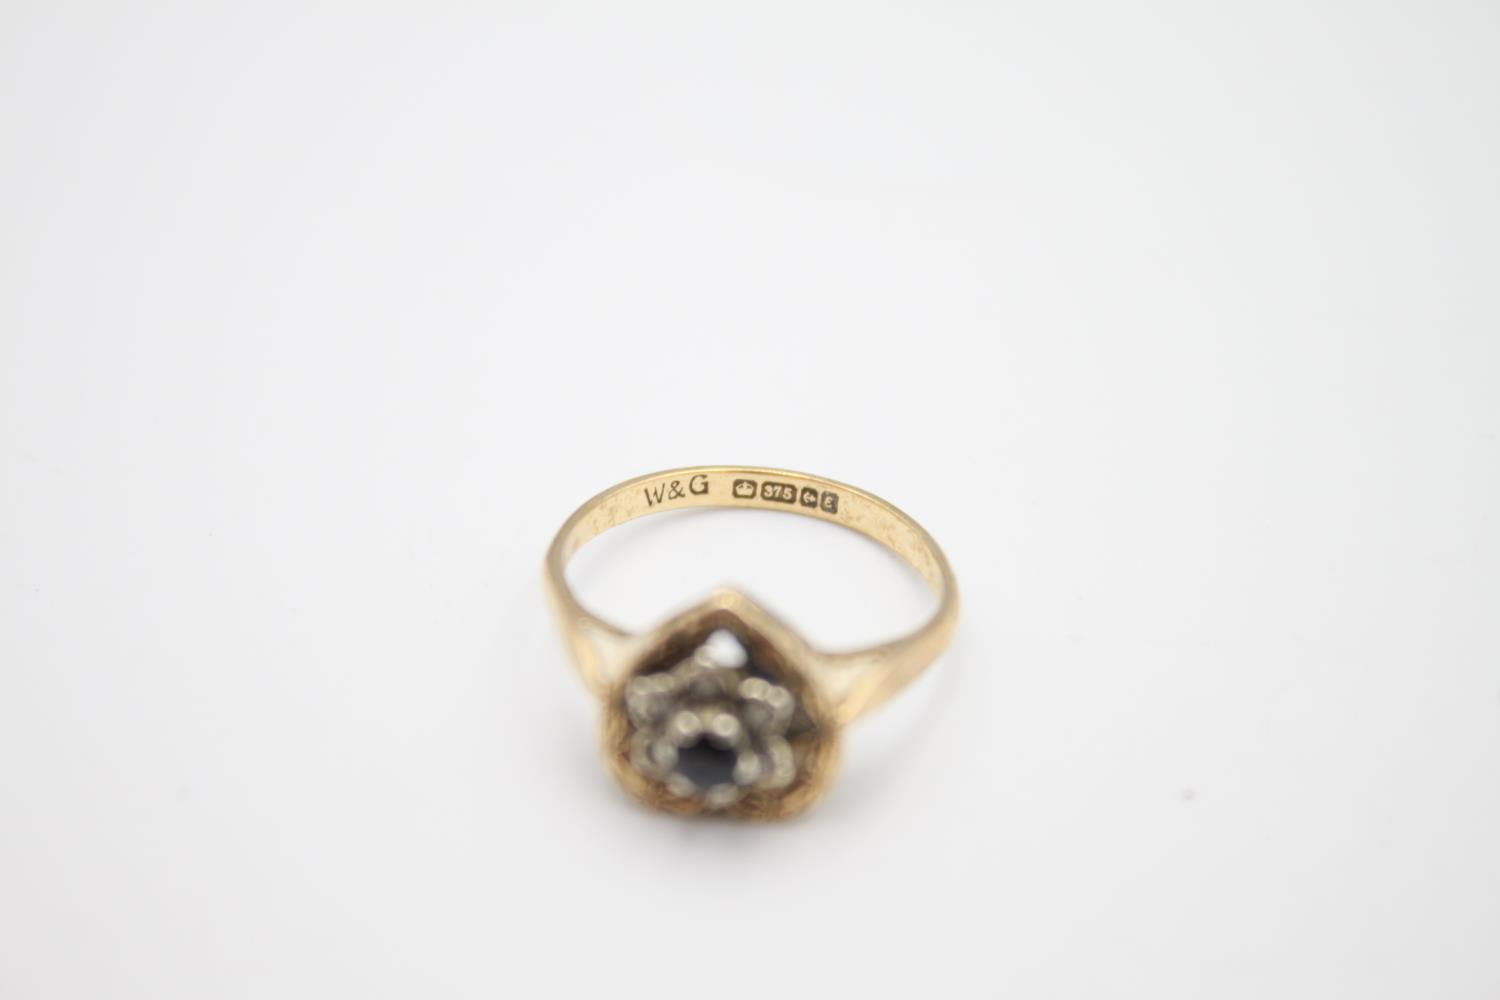 9ct gold diamond sapphire cluster ring 2.7g Size L - Image 2 of 4